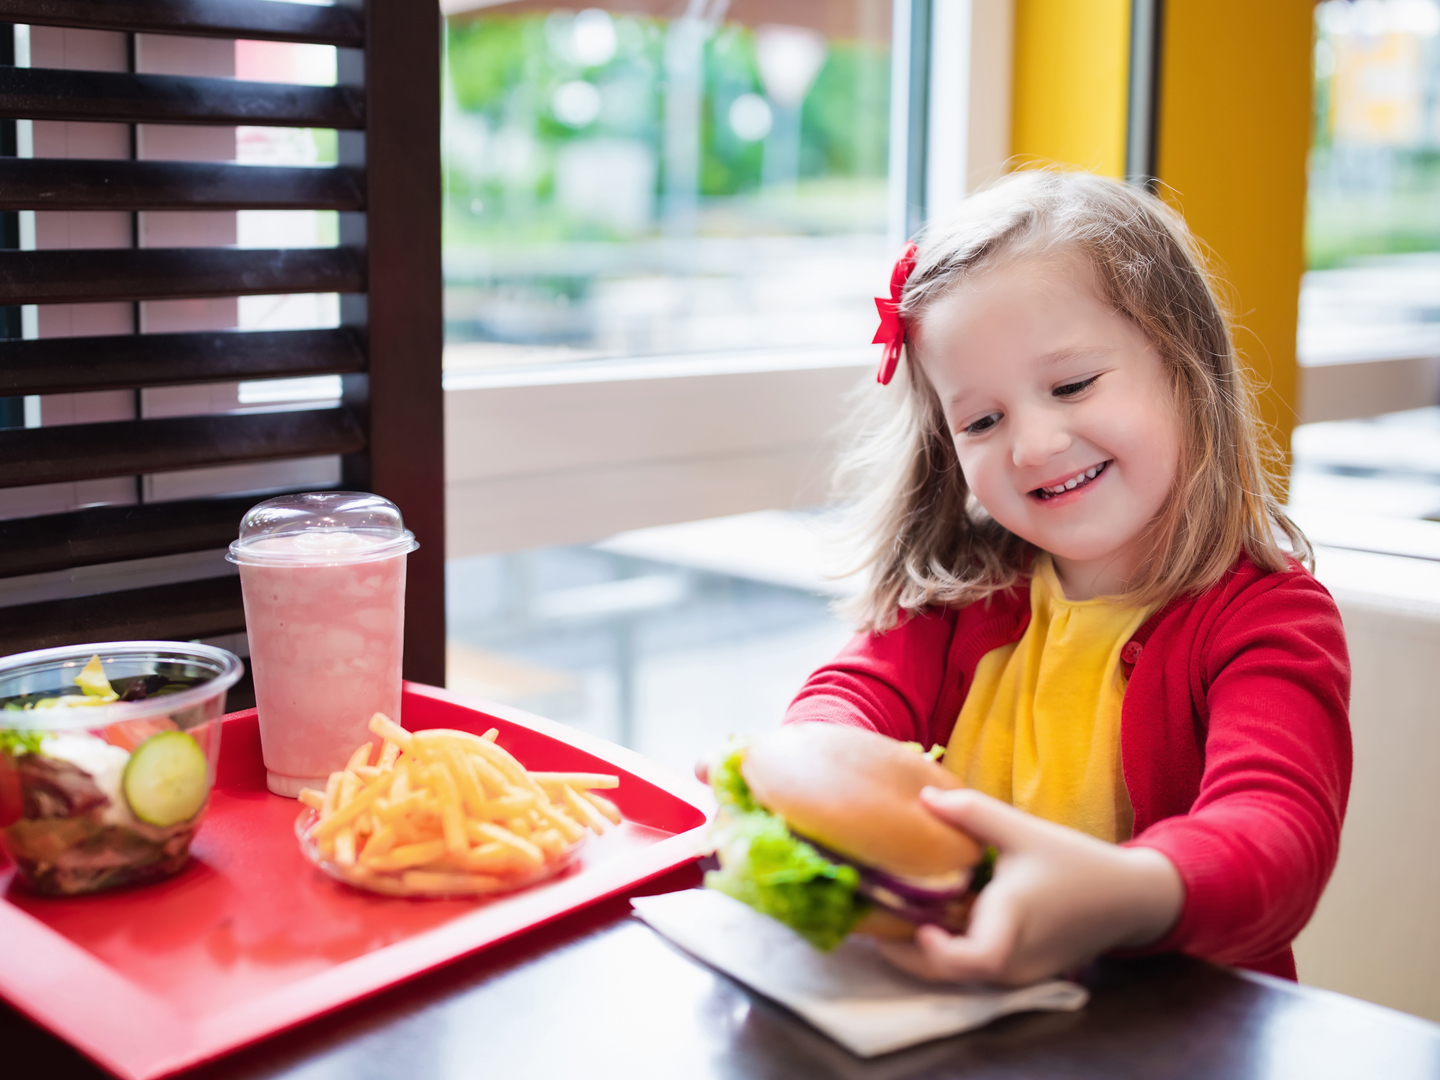 Heart Healthy Diet Fast Food Restaurants